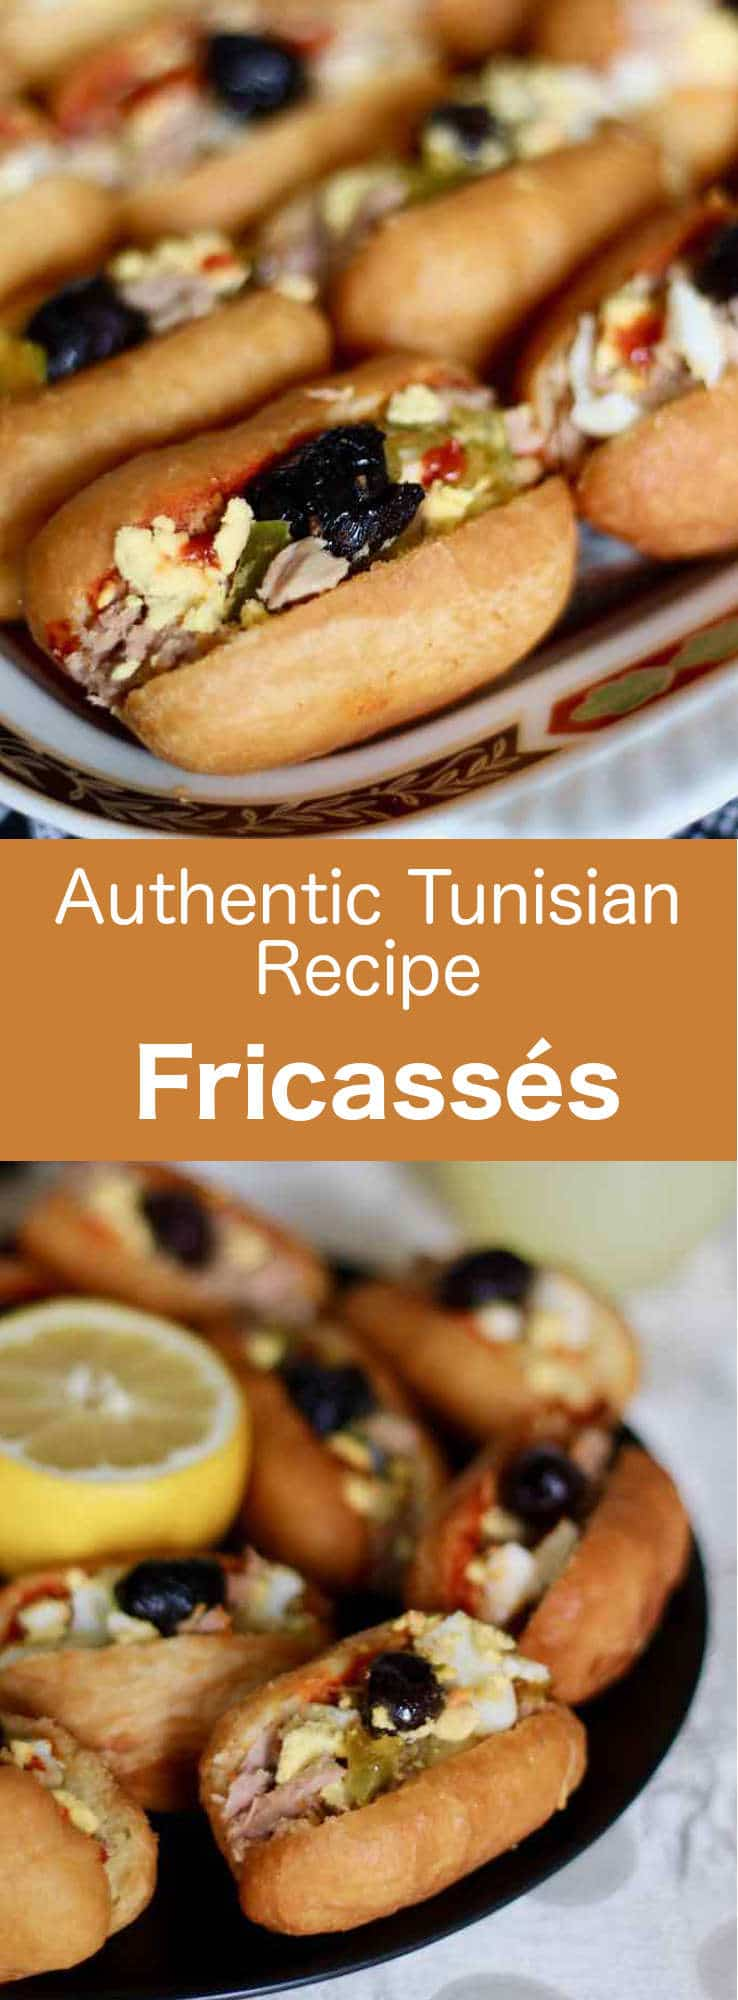 Fricassé is a delicious small savory fried brioche of Tunisian origin, that is filled with potato, harissa, tuna, black olives, hard-boiled egg and slata mechouia. #Tunisia #Tunisian #TunisianCuisine #TunisianRecipe #NorthAfricanCuisine #NorthAfricanRecipe #NorthAfrica #Maghreb #MaghrebCuisine #kemia #WorldCuisine #196flavors